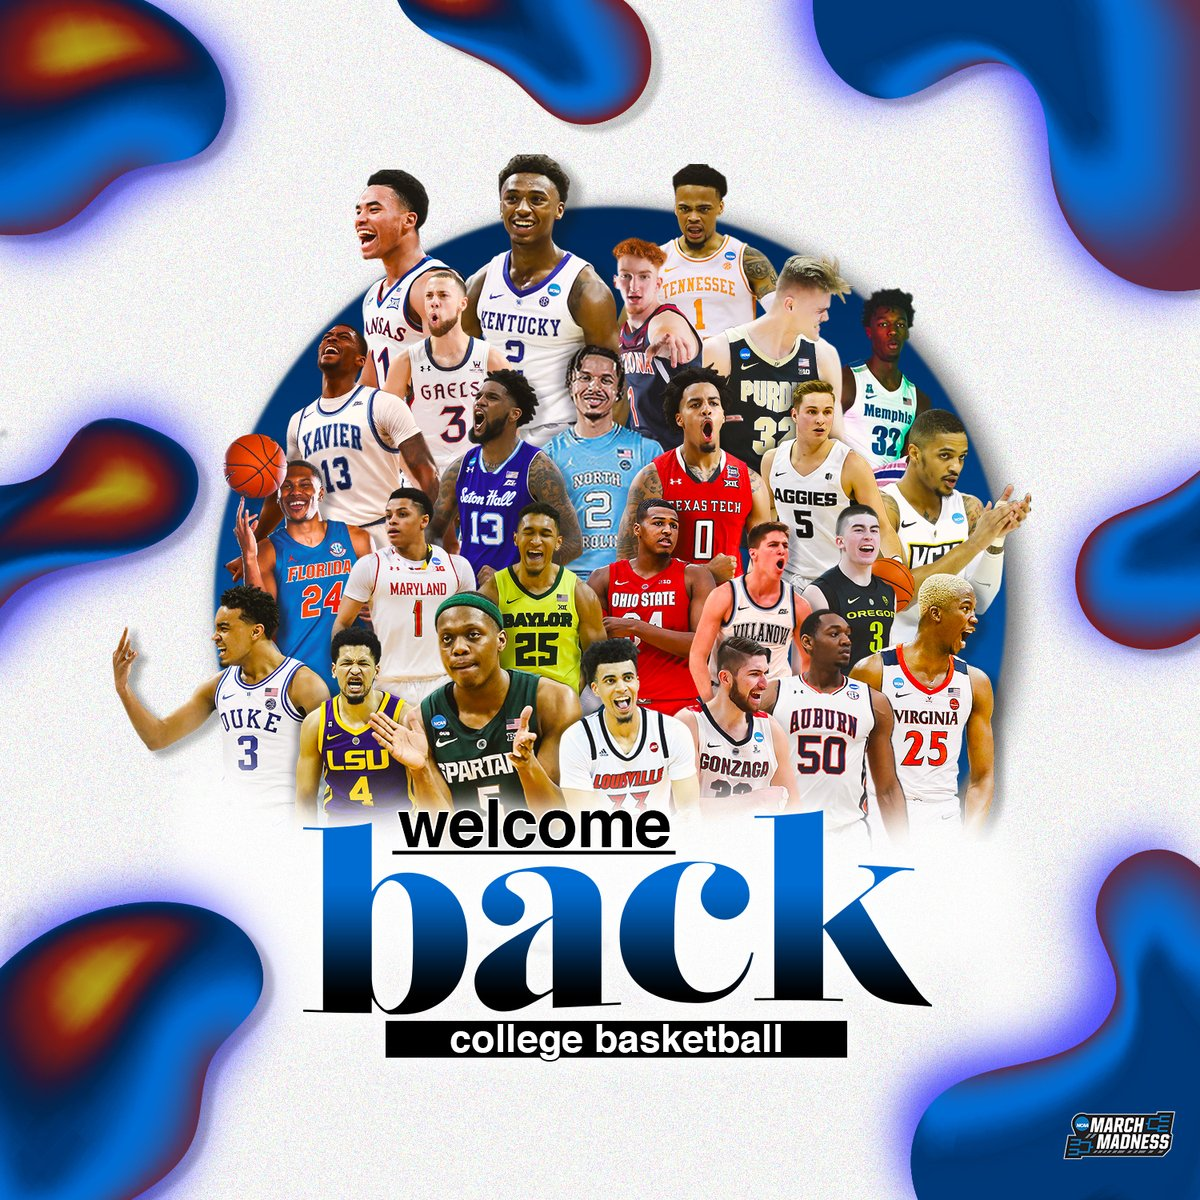 Welcome back, college basketball. You've been missed.  RT if you're excited for the season starting!